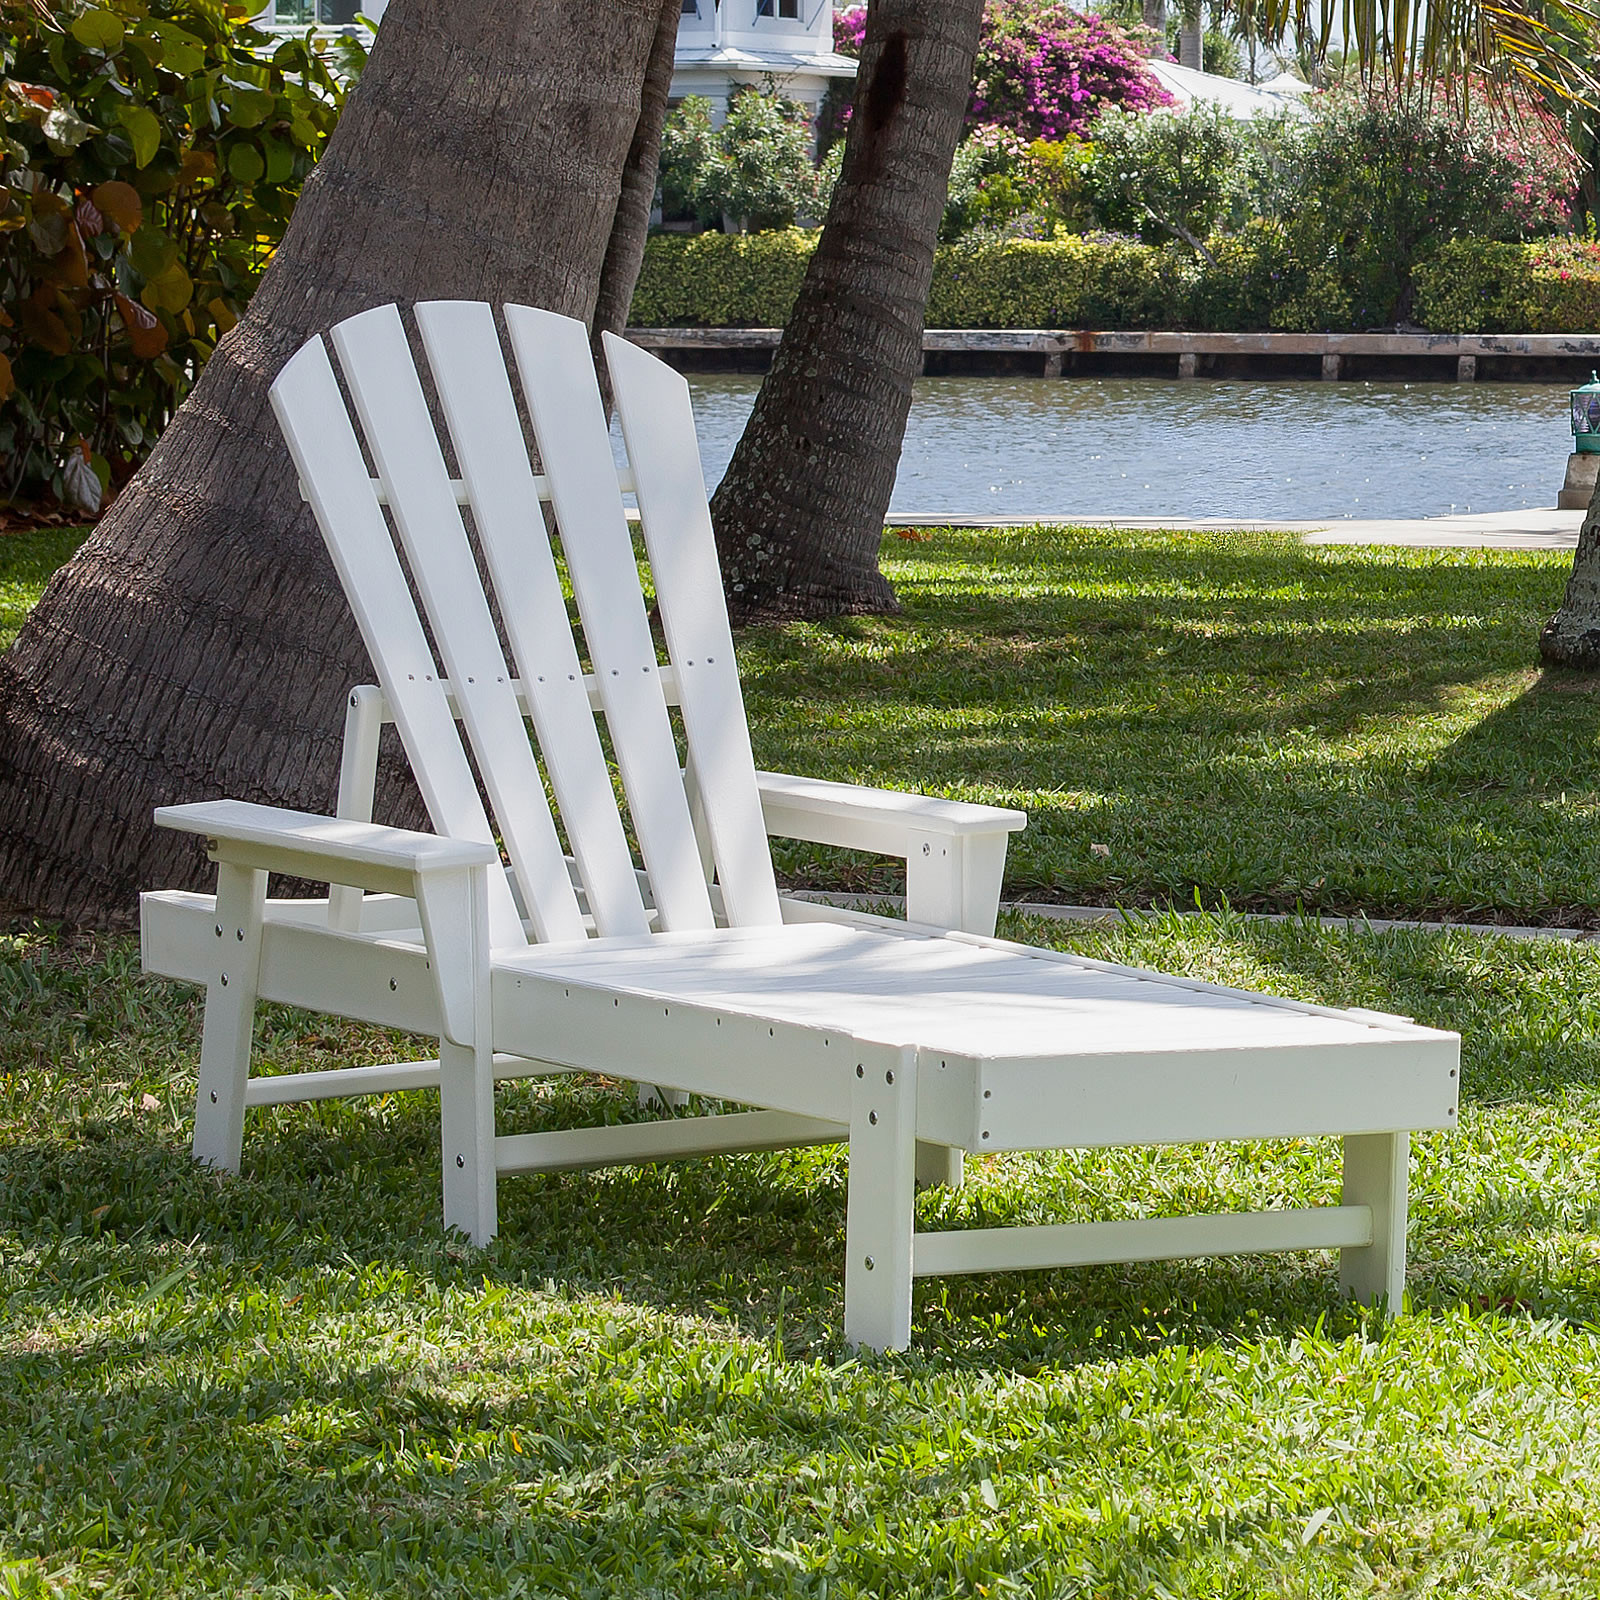 Polywood south beach chaise lounge south beach for Beach chaise lounger